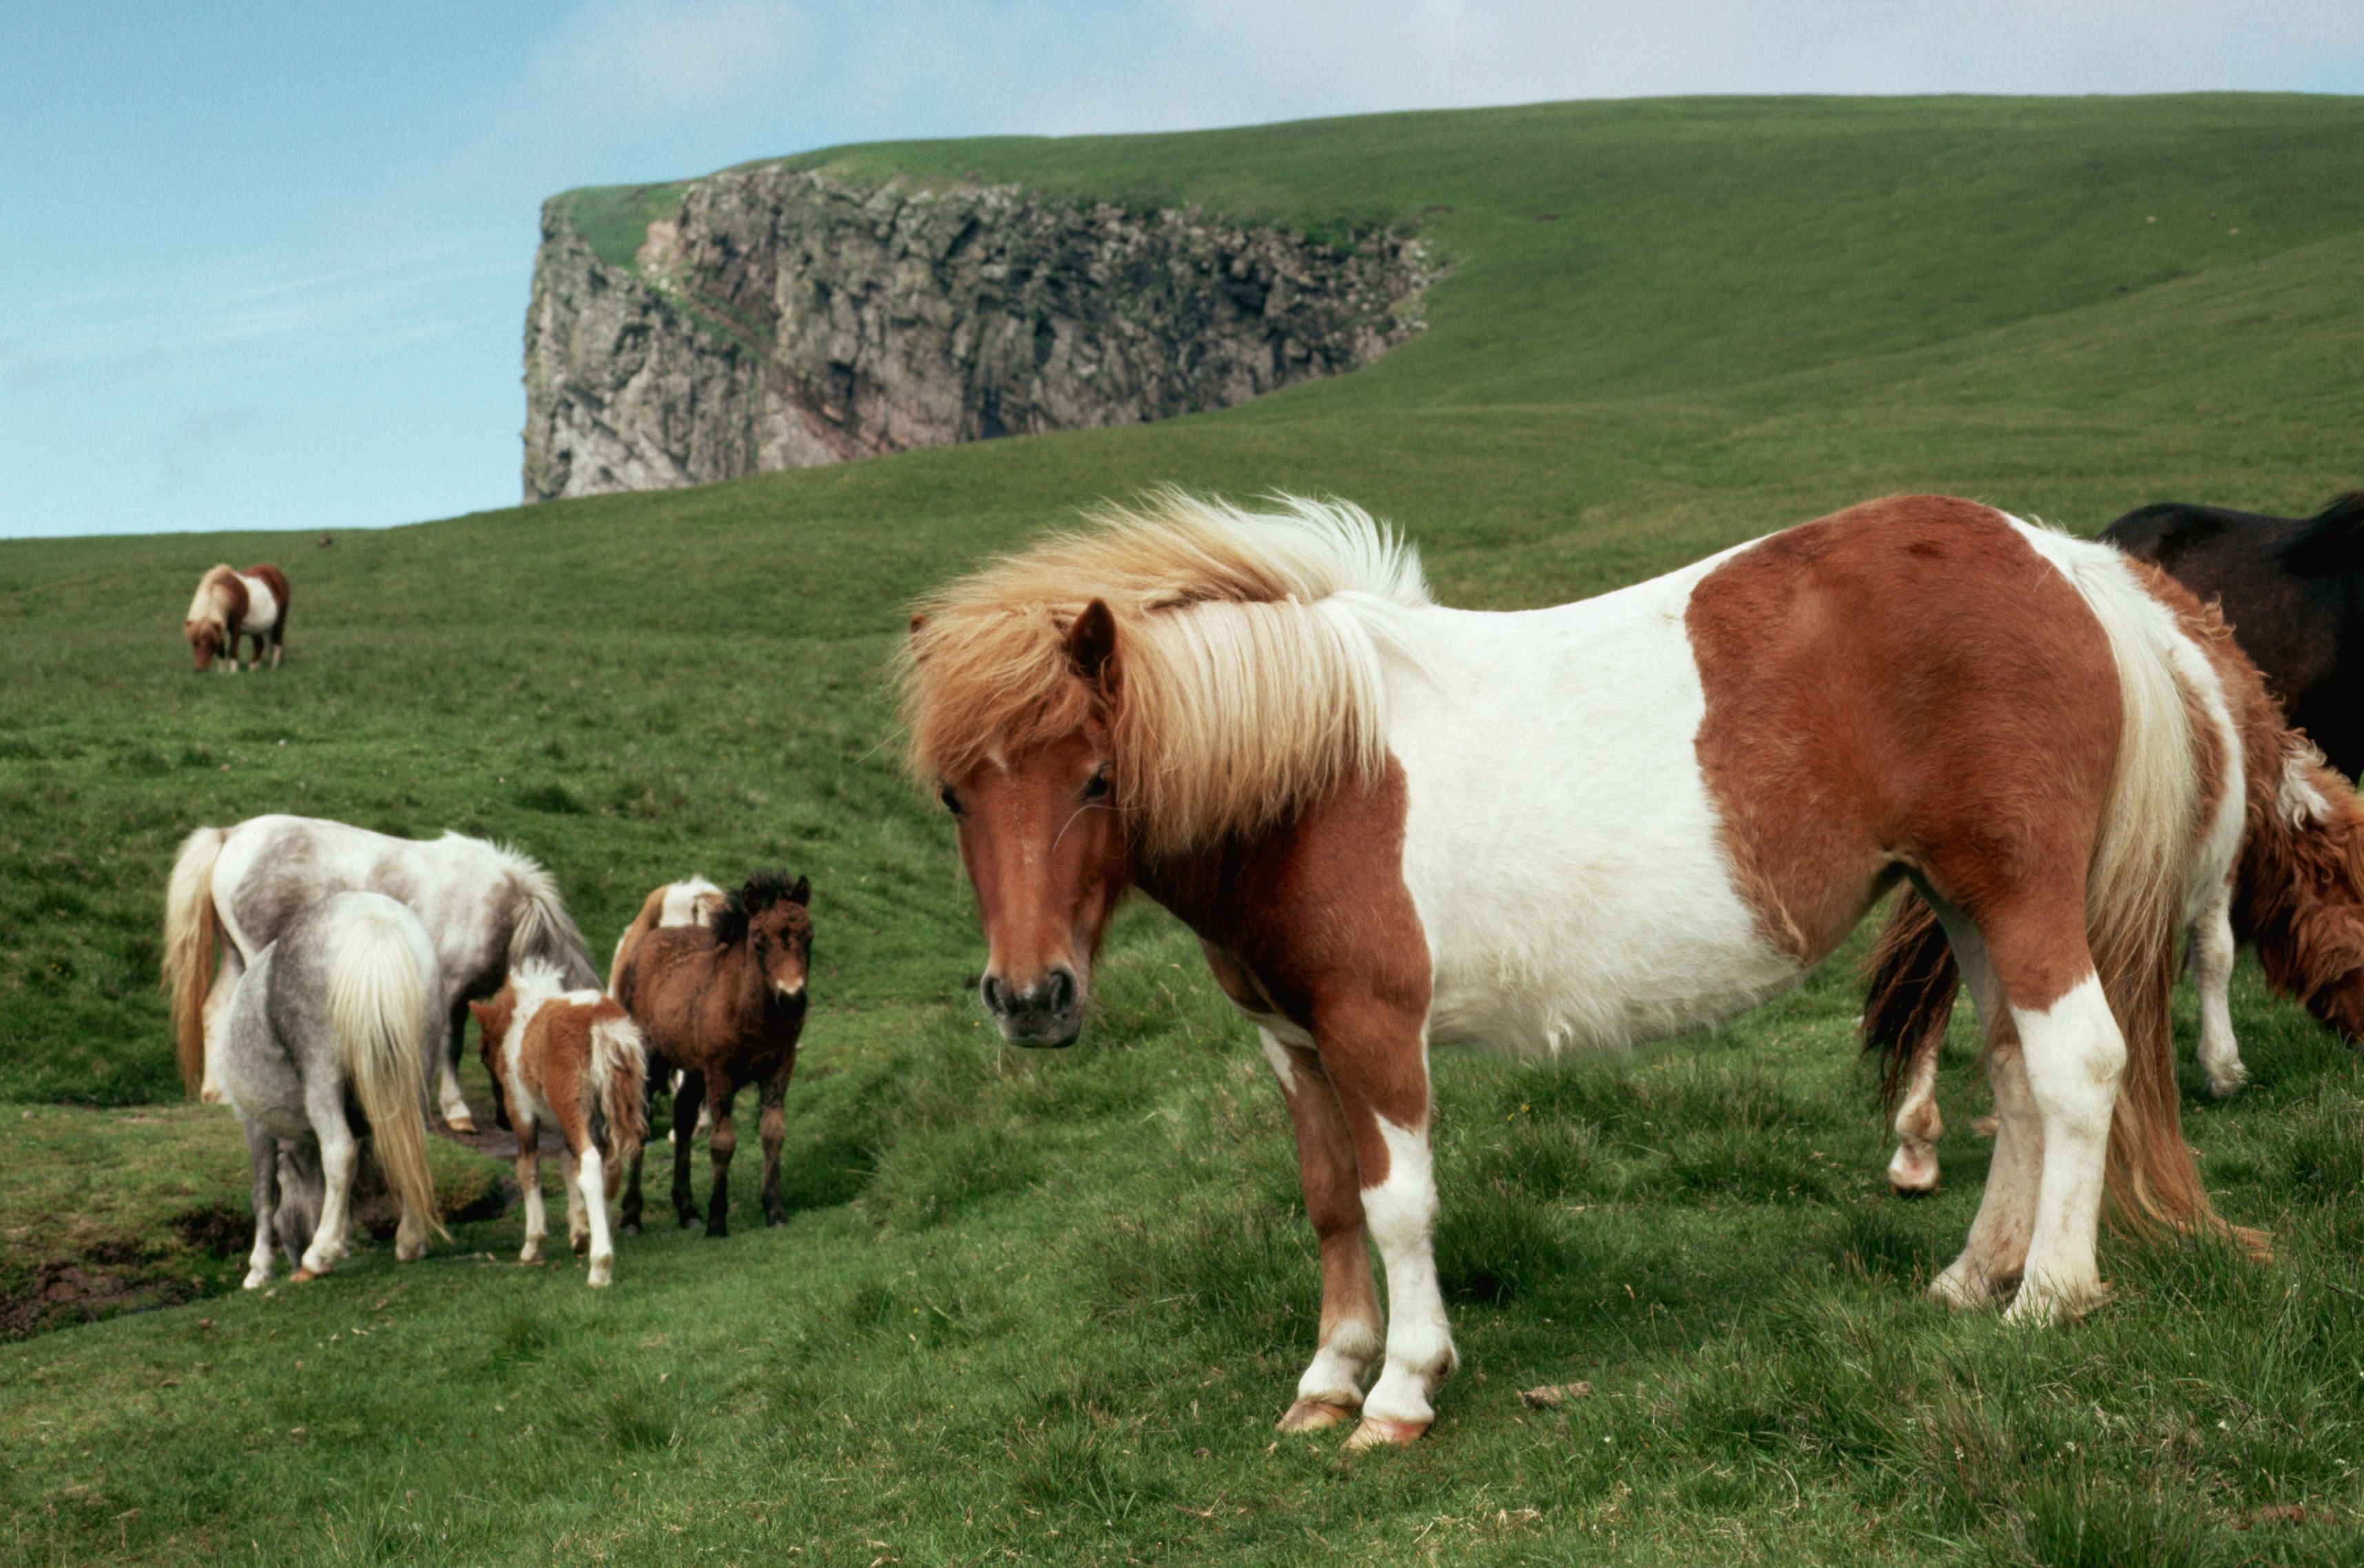 Brown-and-white wild Shetland ponies on a grassy hill